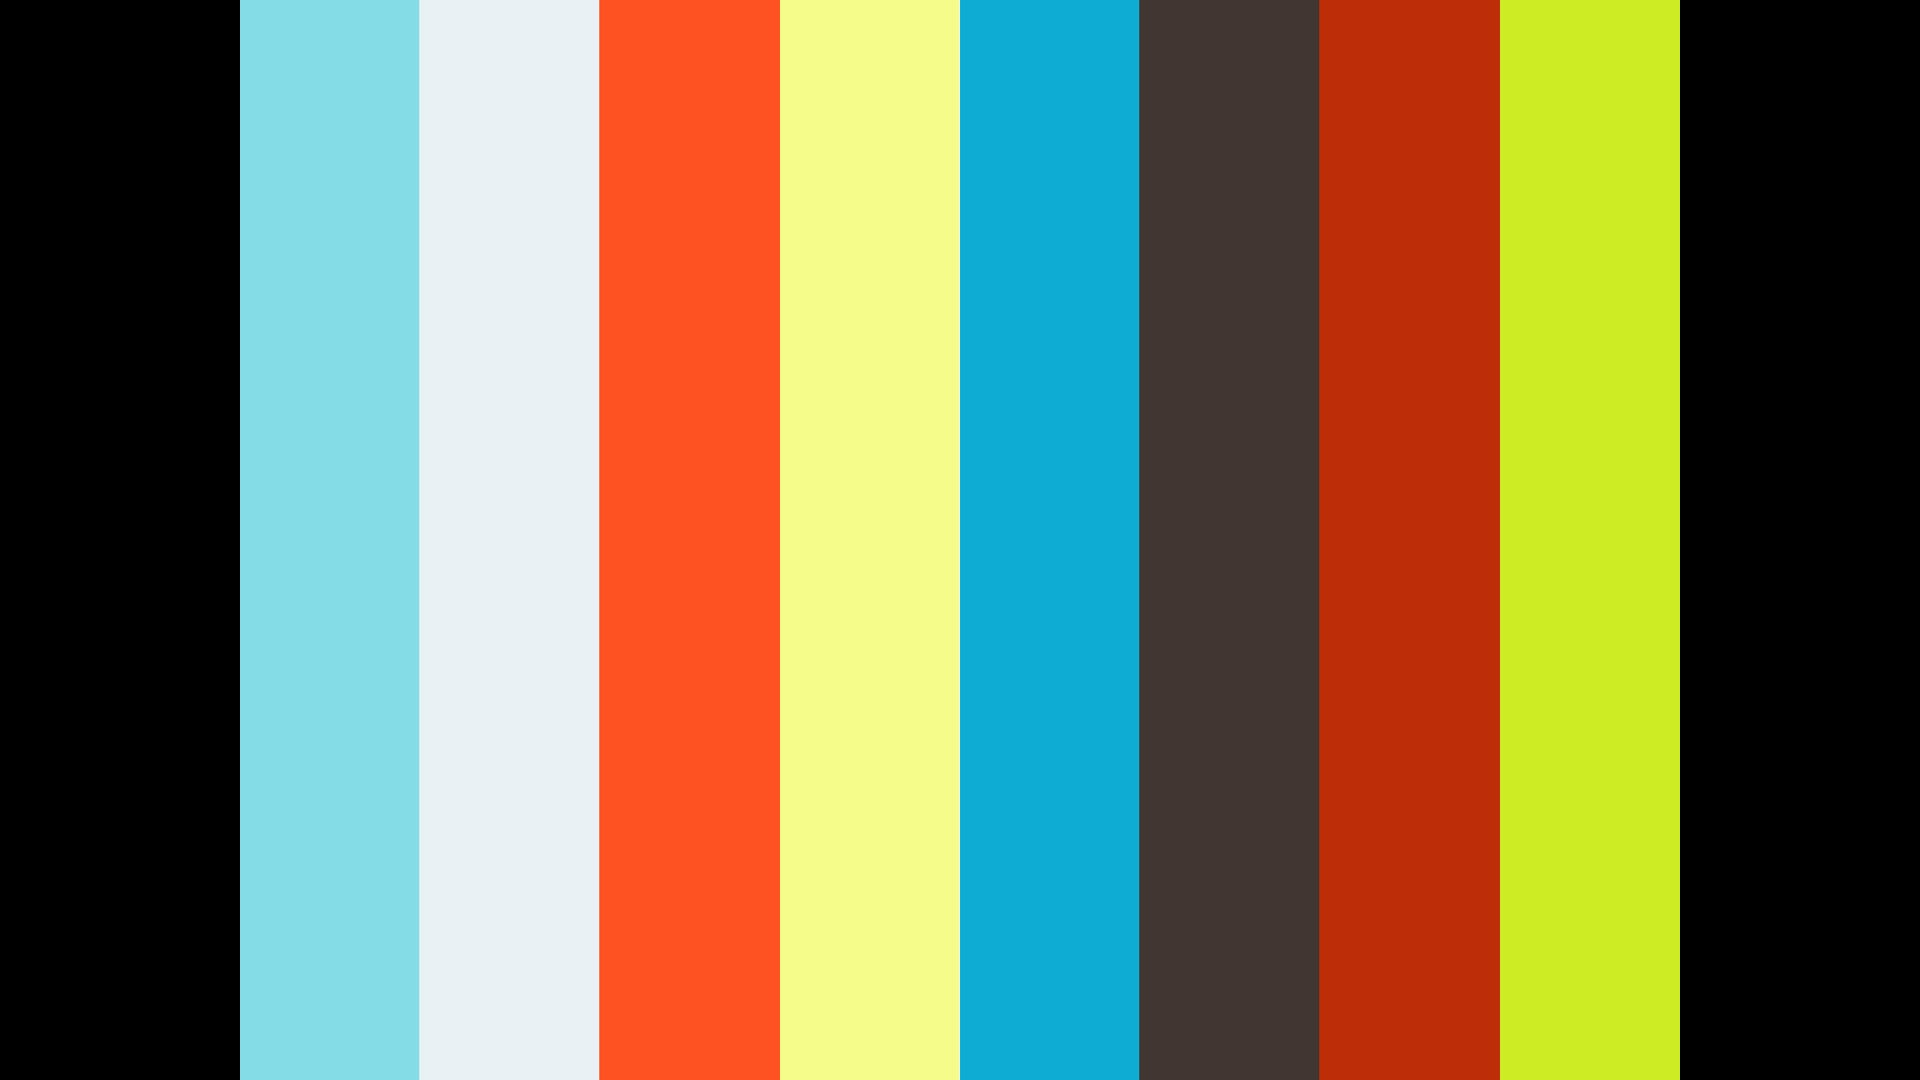 Jon Collins – When is Code not Code? When it's Low-Code